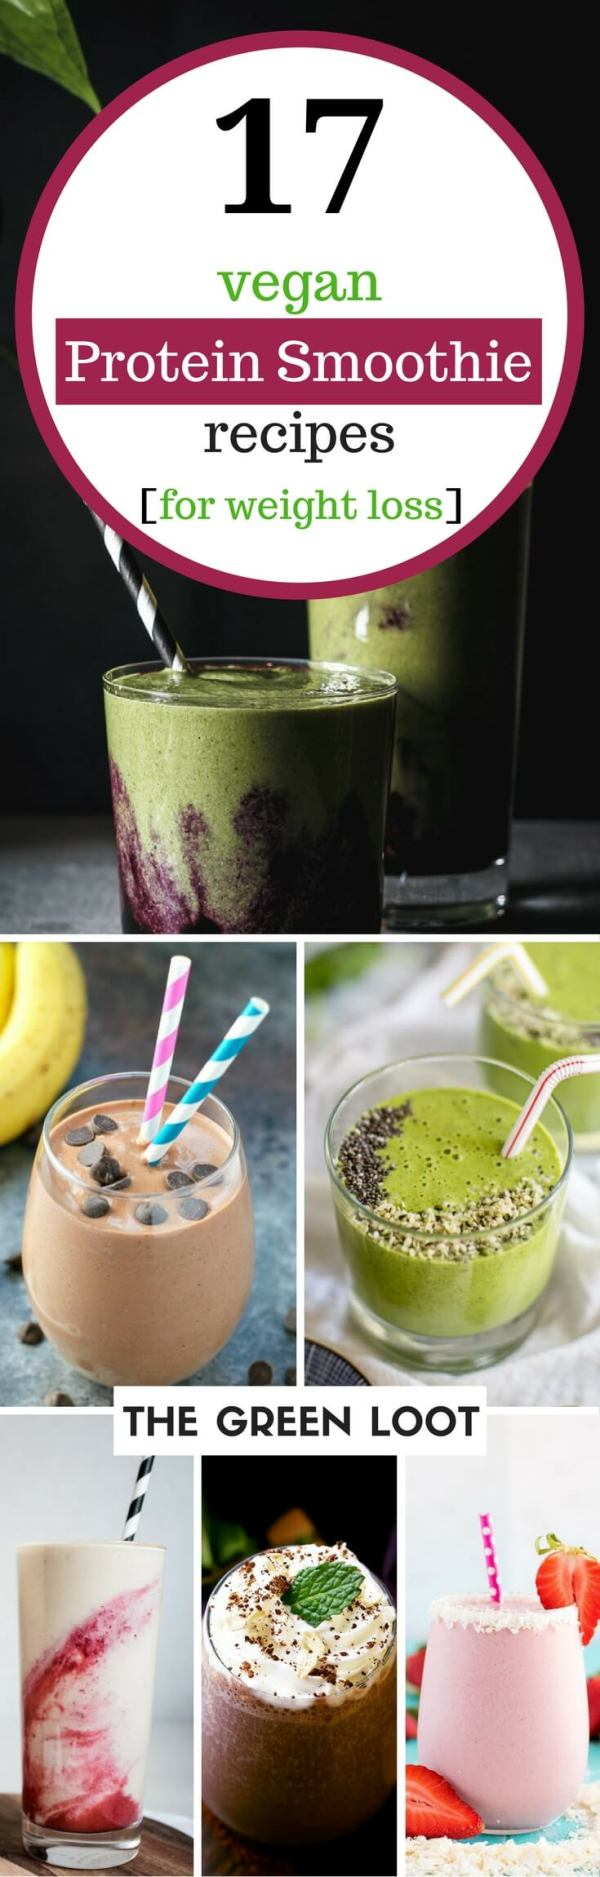 17 Tasty Vegan Protein Smoothie Recipes for Weight Loss ...